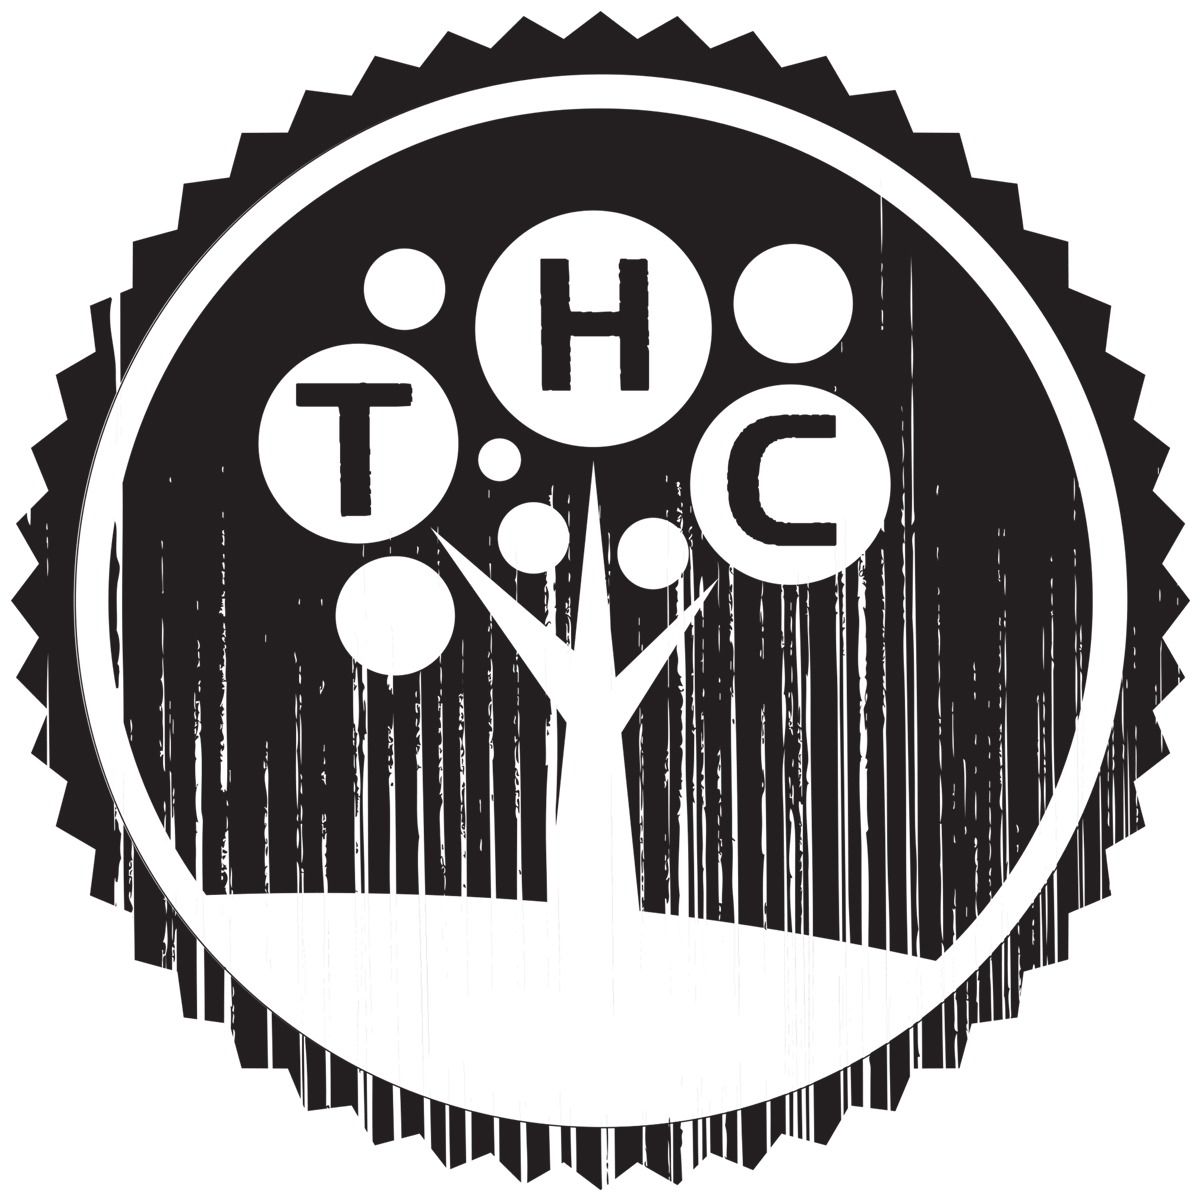 THC-LOGO_clearbackground_XL.jpg